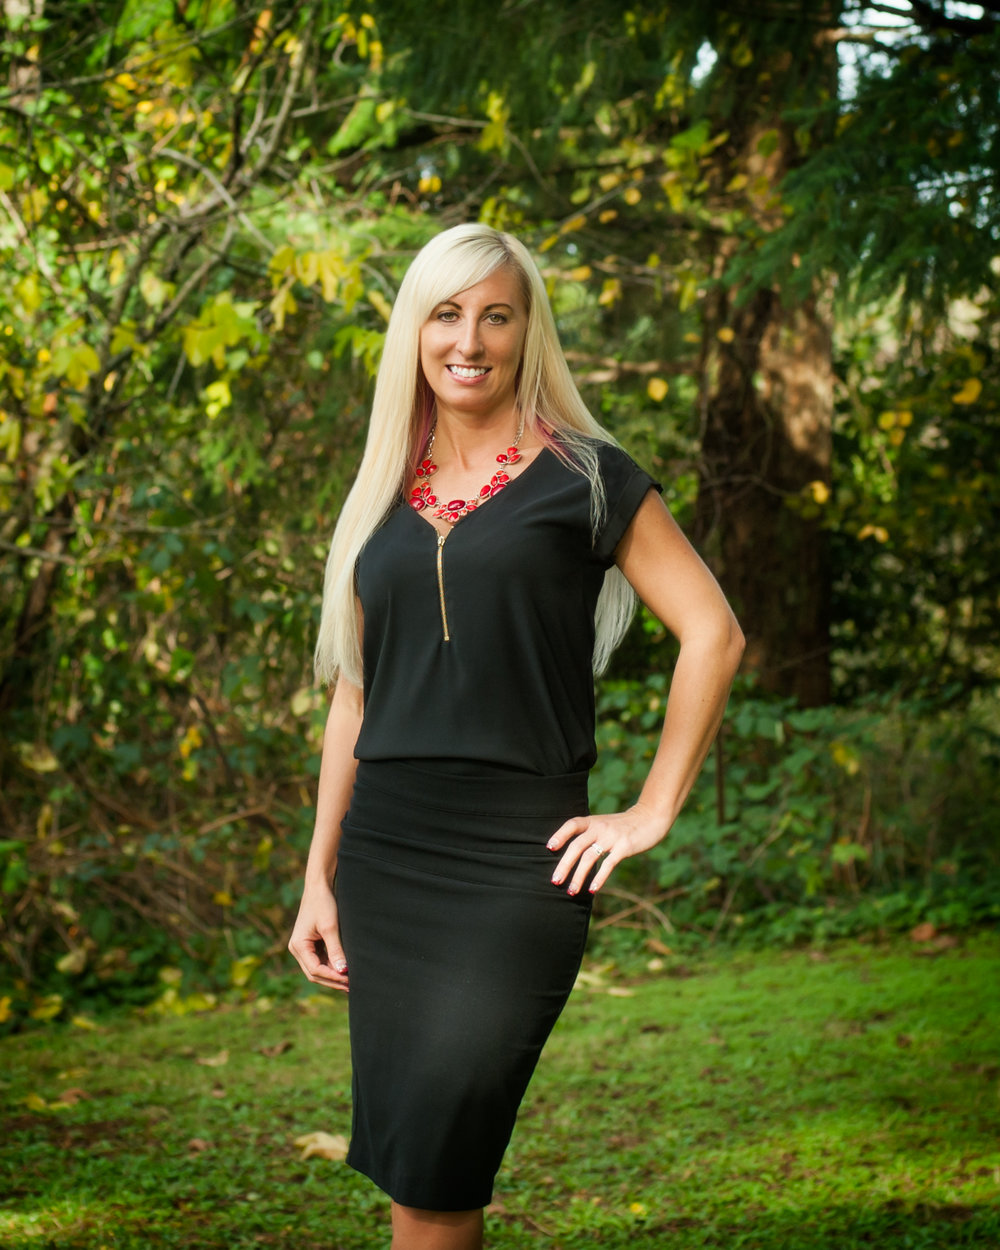 Commercial portrait of realtor by photographers at Ripe Photography in Portland, Oregon.